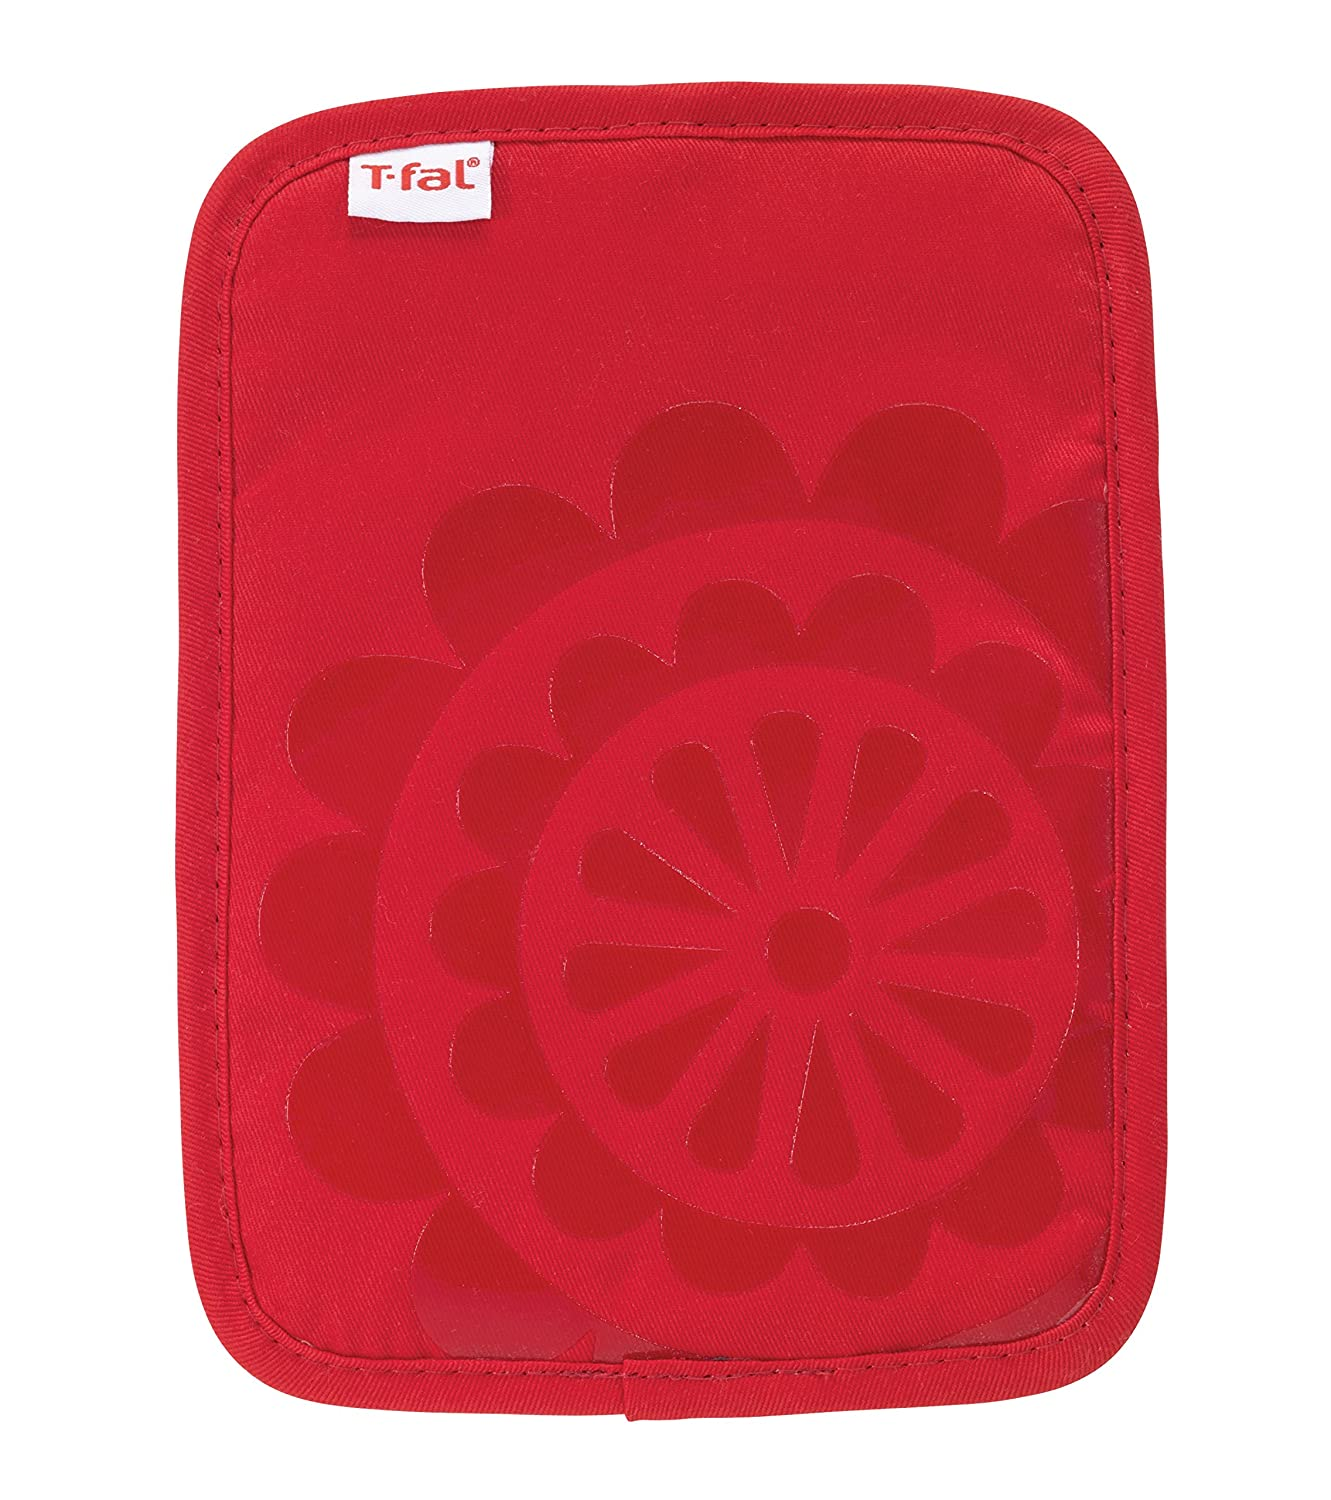 T-fal Textiles Silicone Printed Medallion 100% Cotton Twill Hot Pad Pot Holders, 9-inches x 6.75-inches, Set of 2, Blue John Ritzenthaler Company 97160